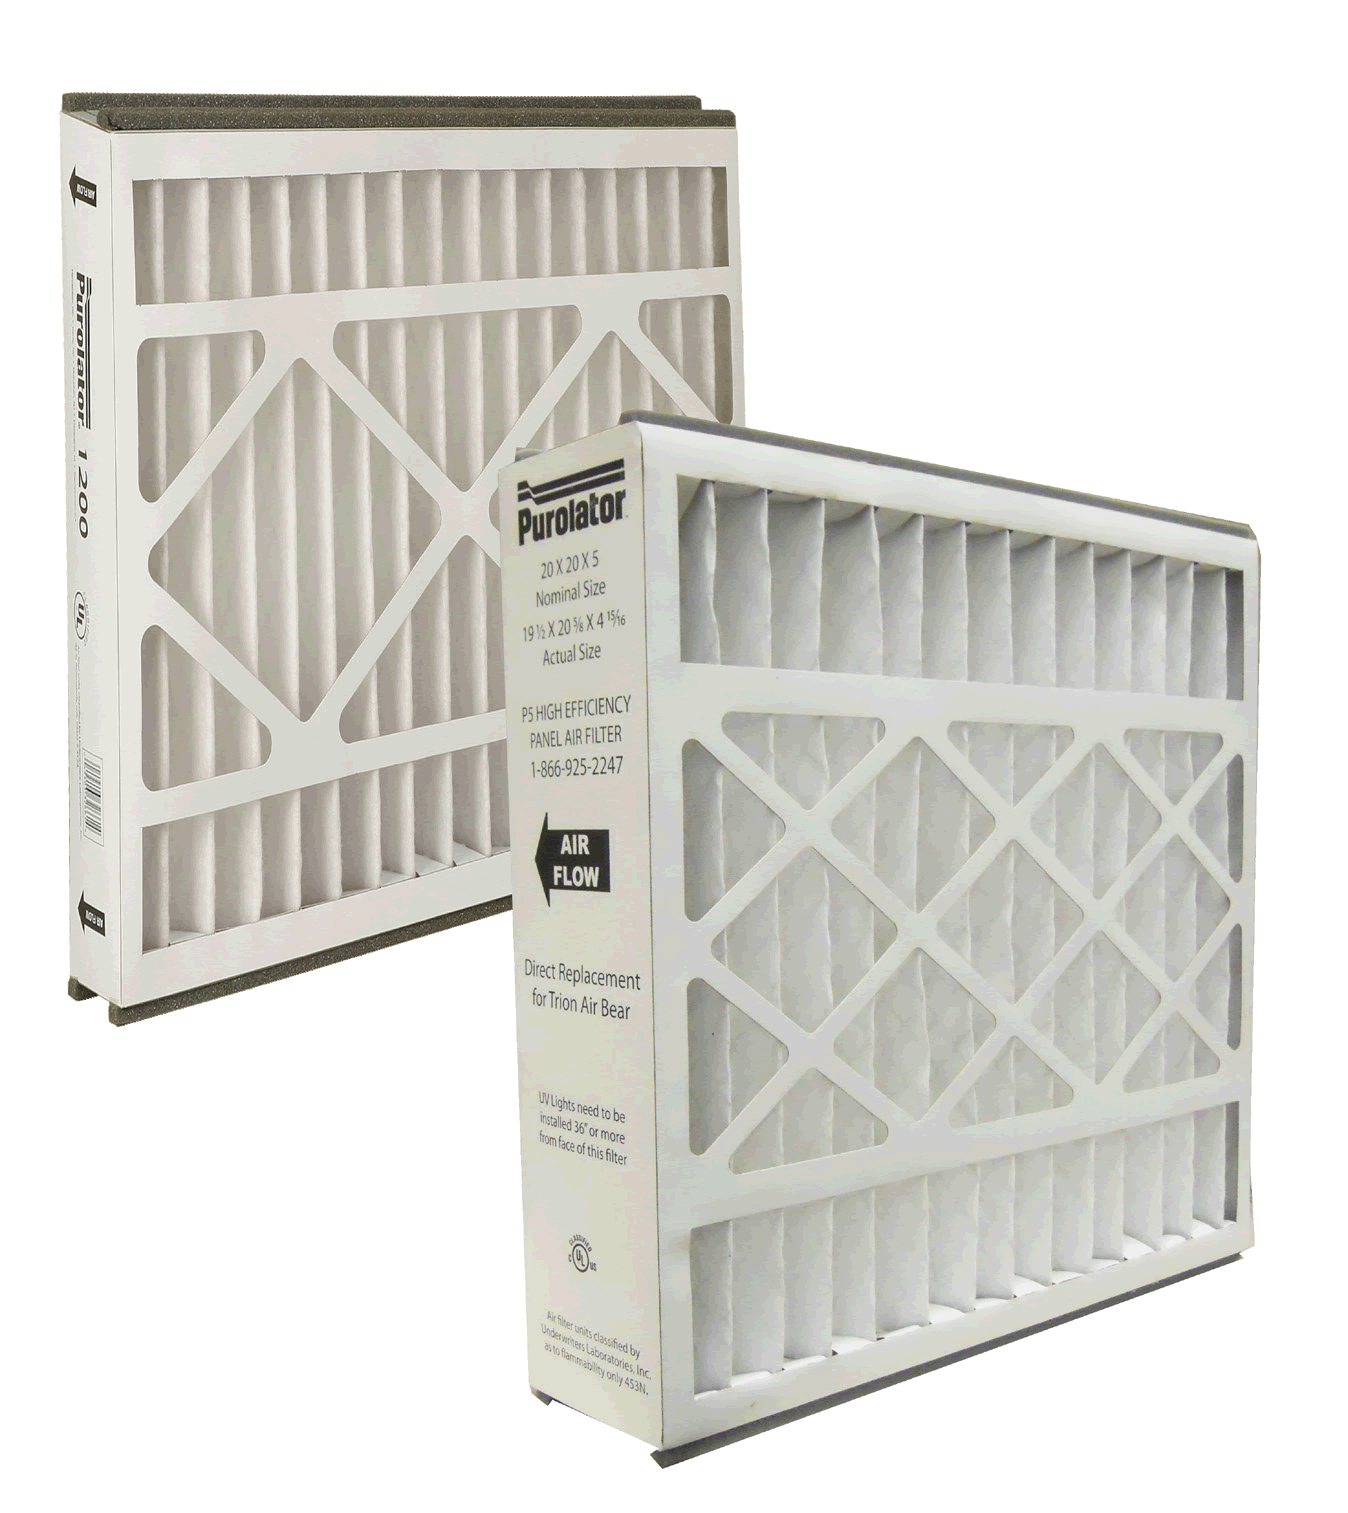 Two Purolator P5/2000 Replacement Air Filters designed for Trion Air Bear systems.